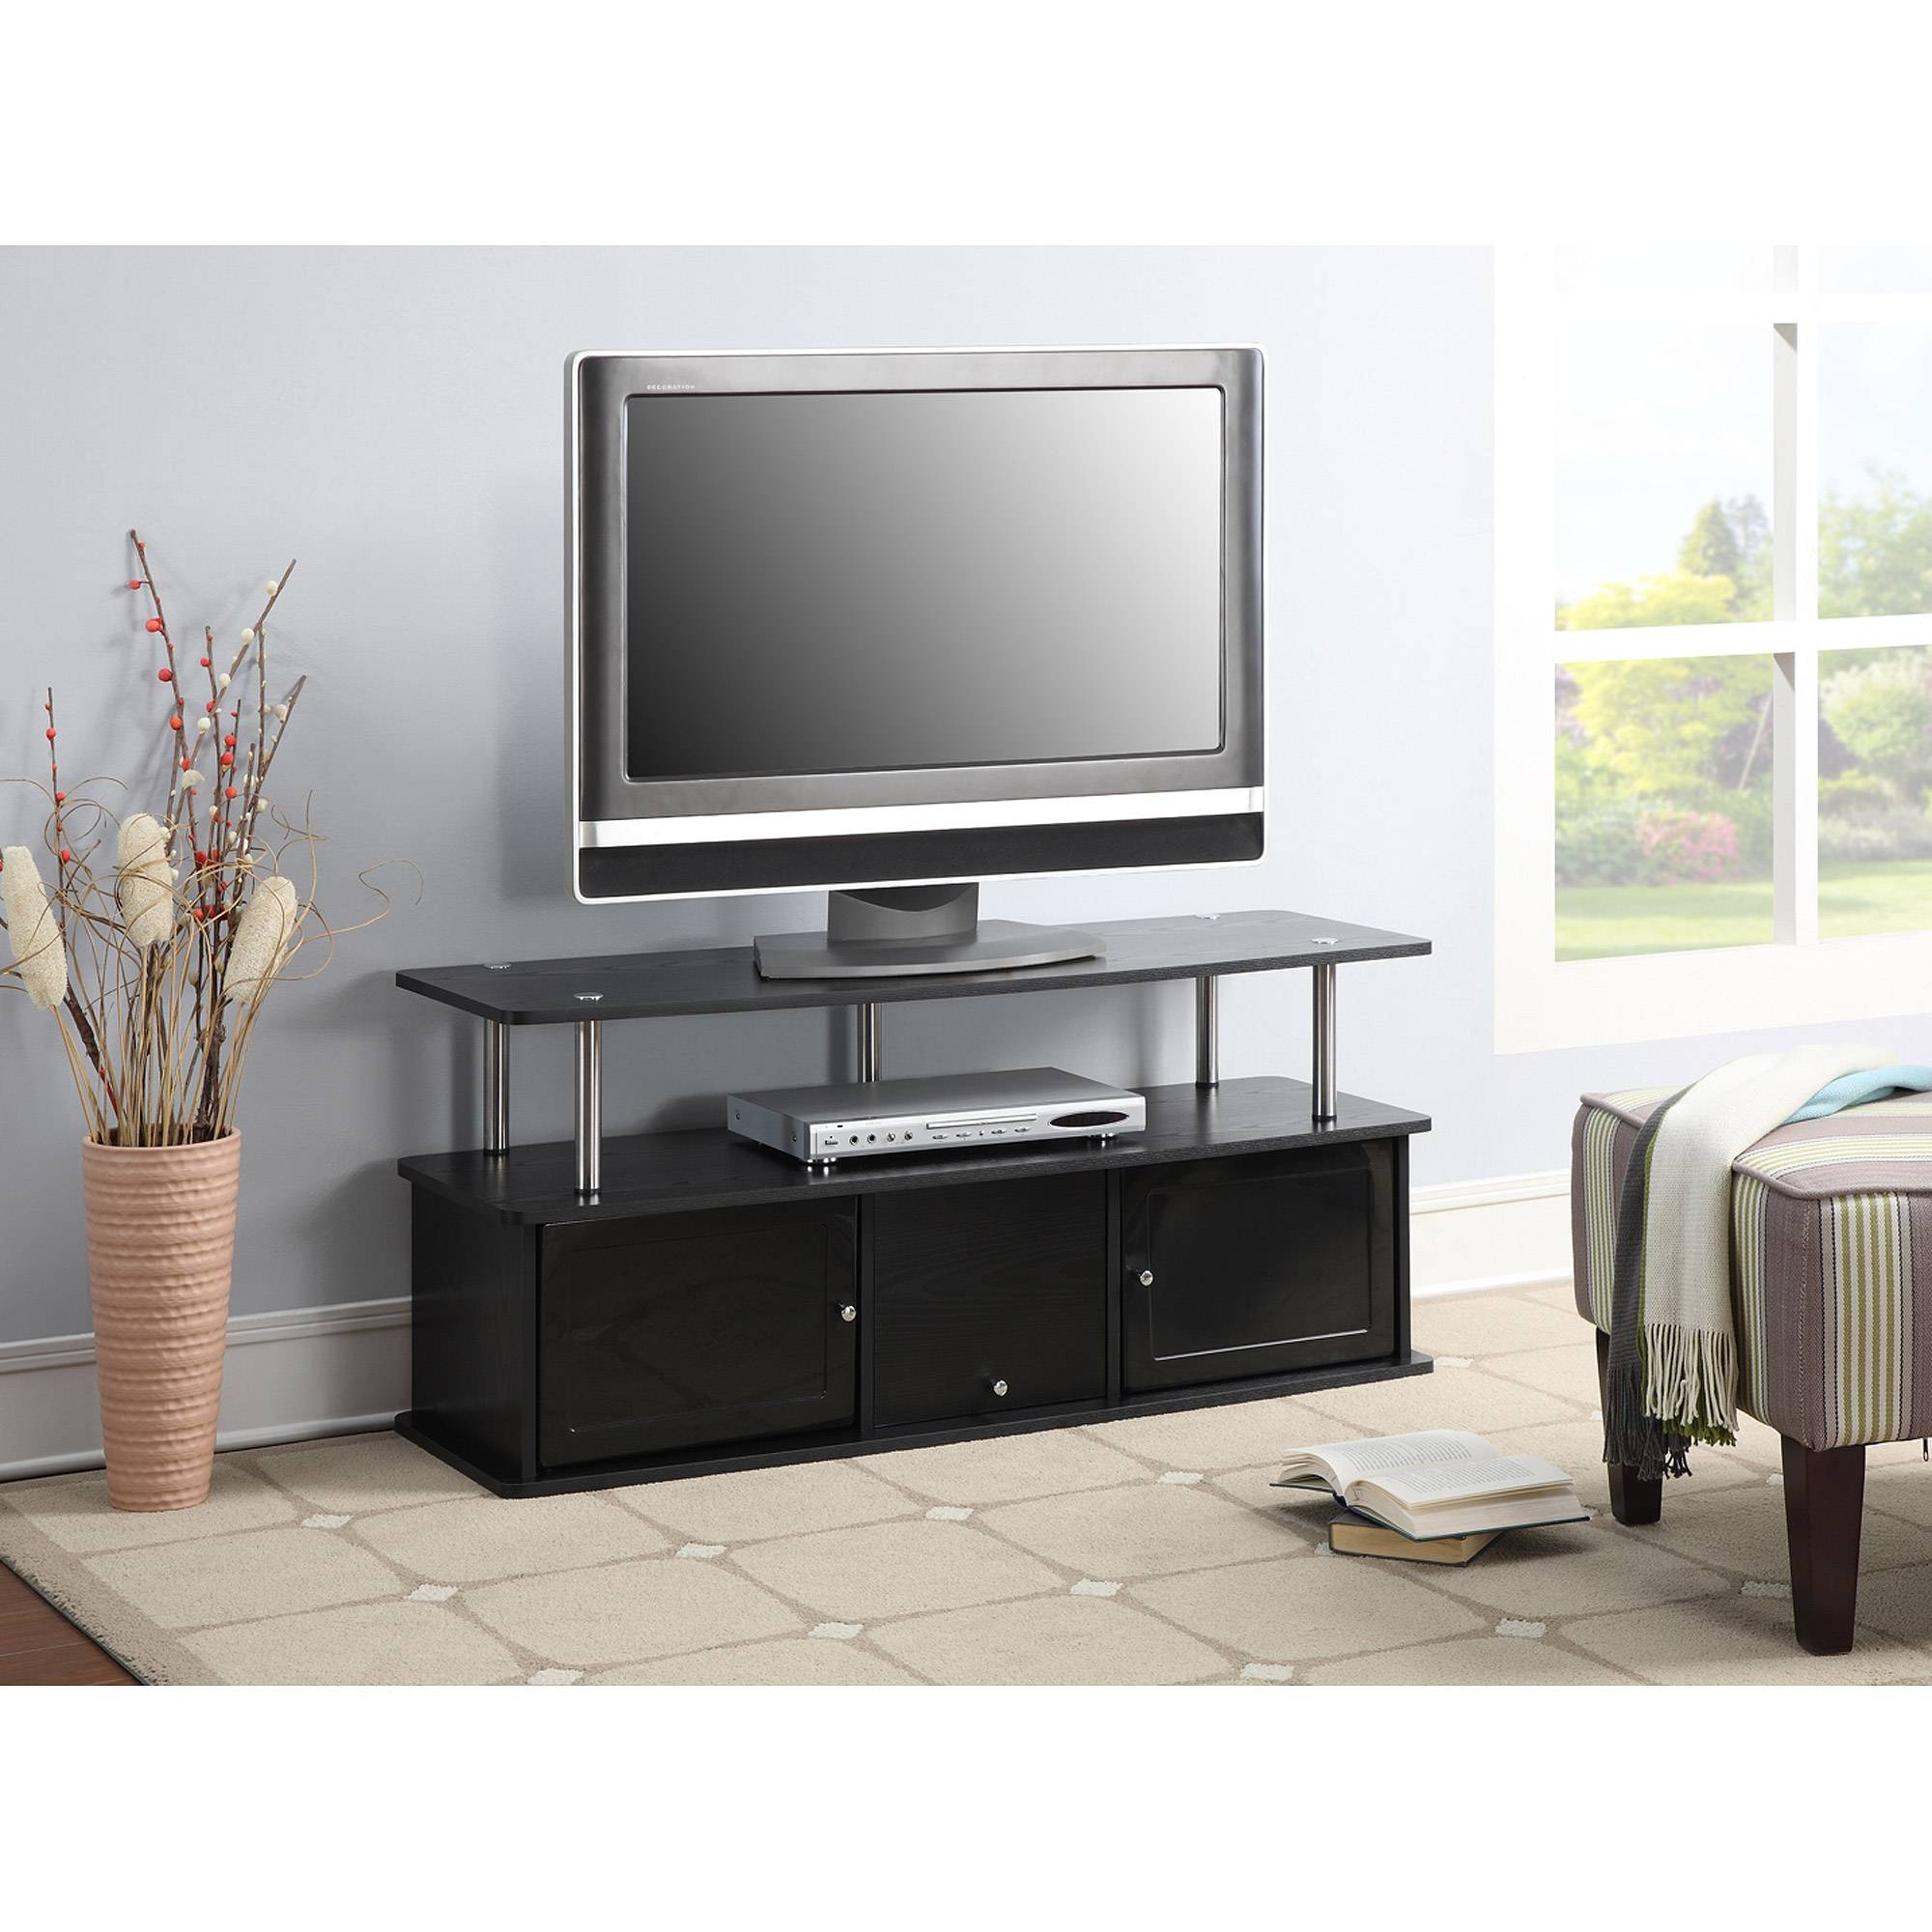 Beautiful Teak Wood Tv Stand 22 With Additional Home Wallpaper within Tv Stands For Small Spaces (Image 1 of 15)